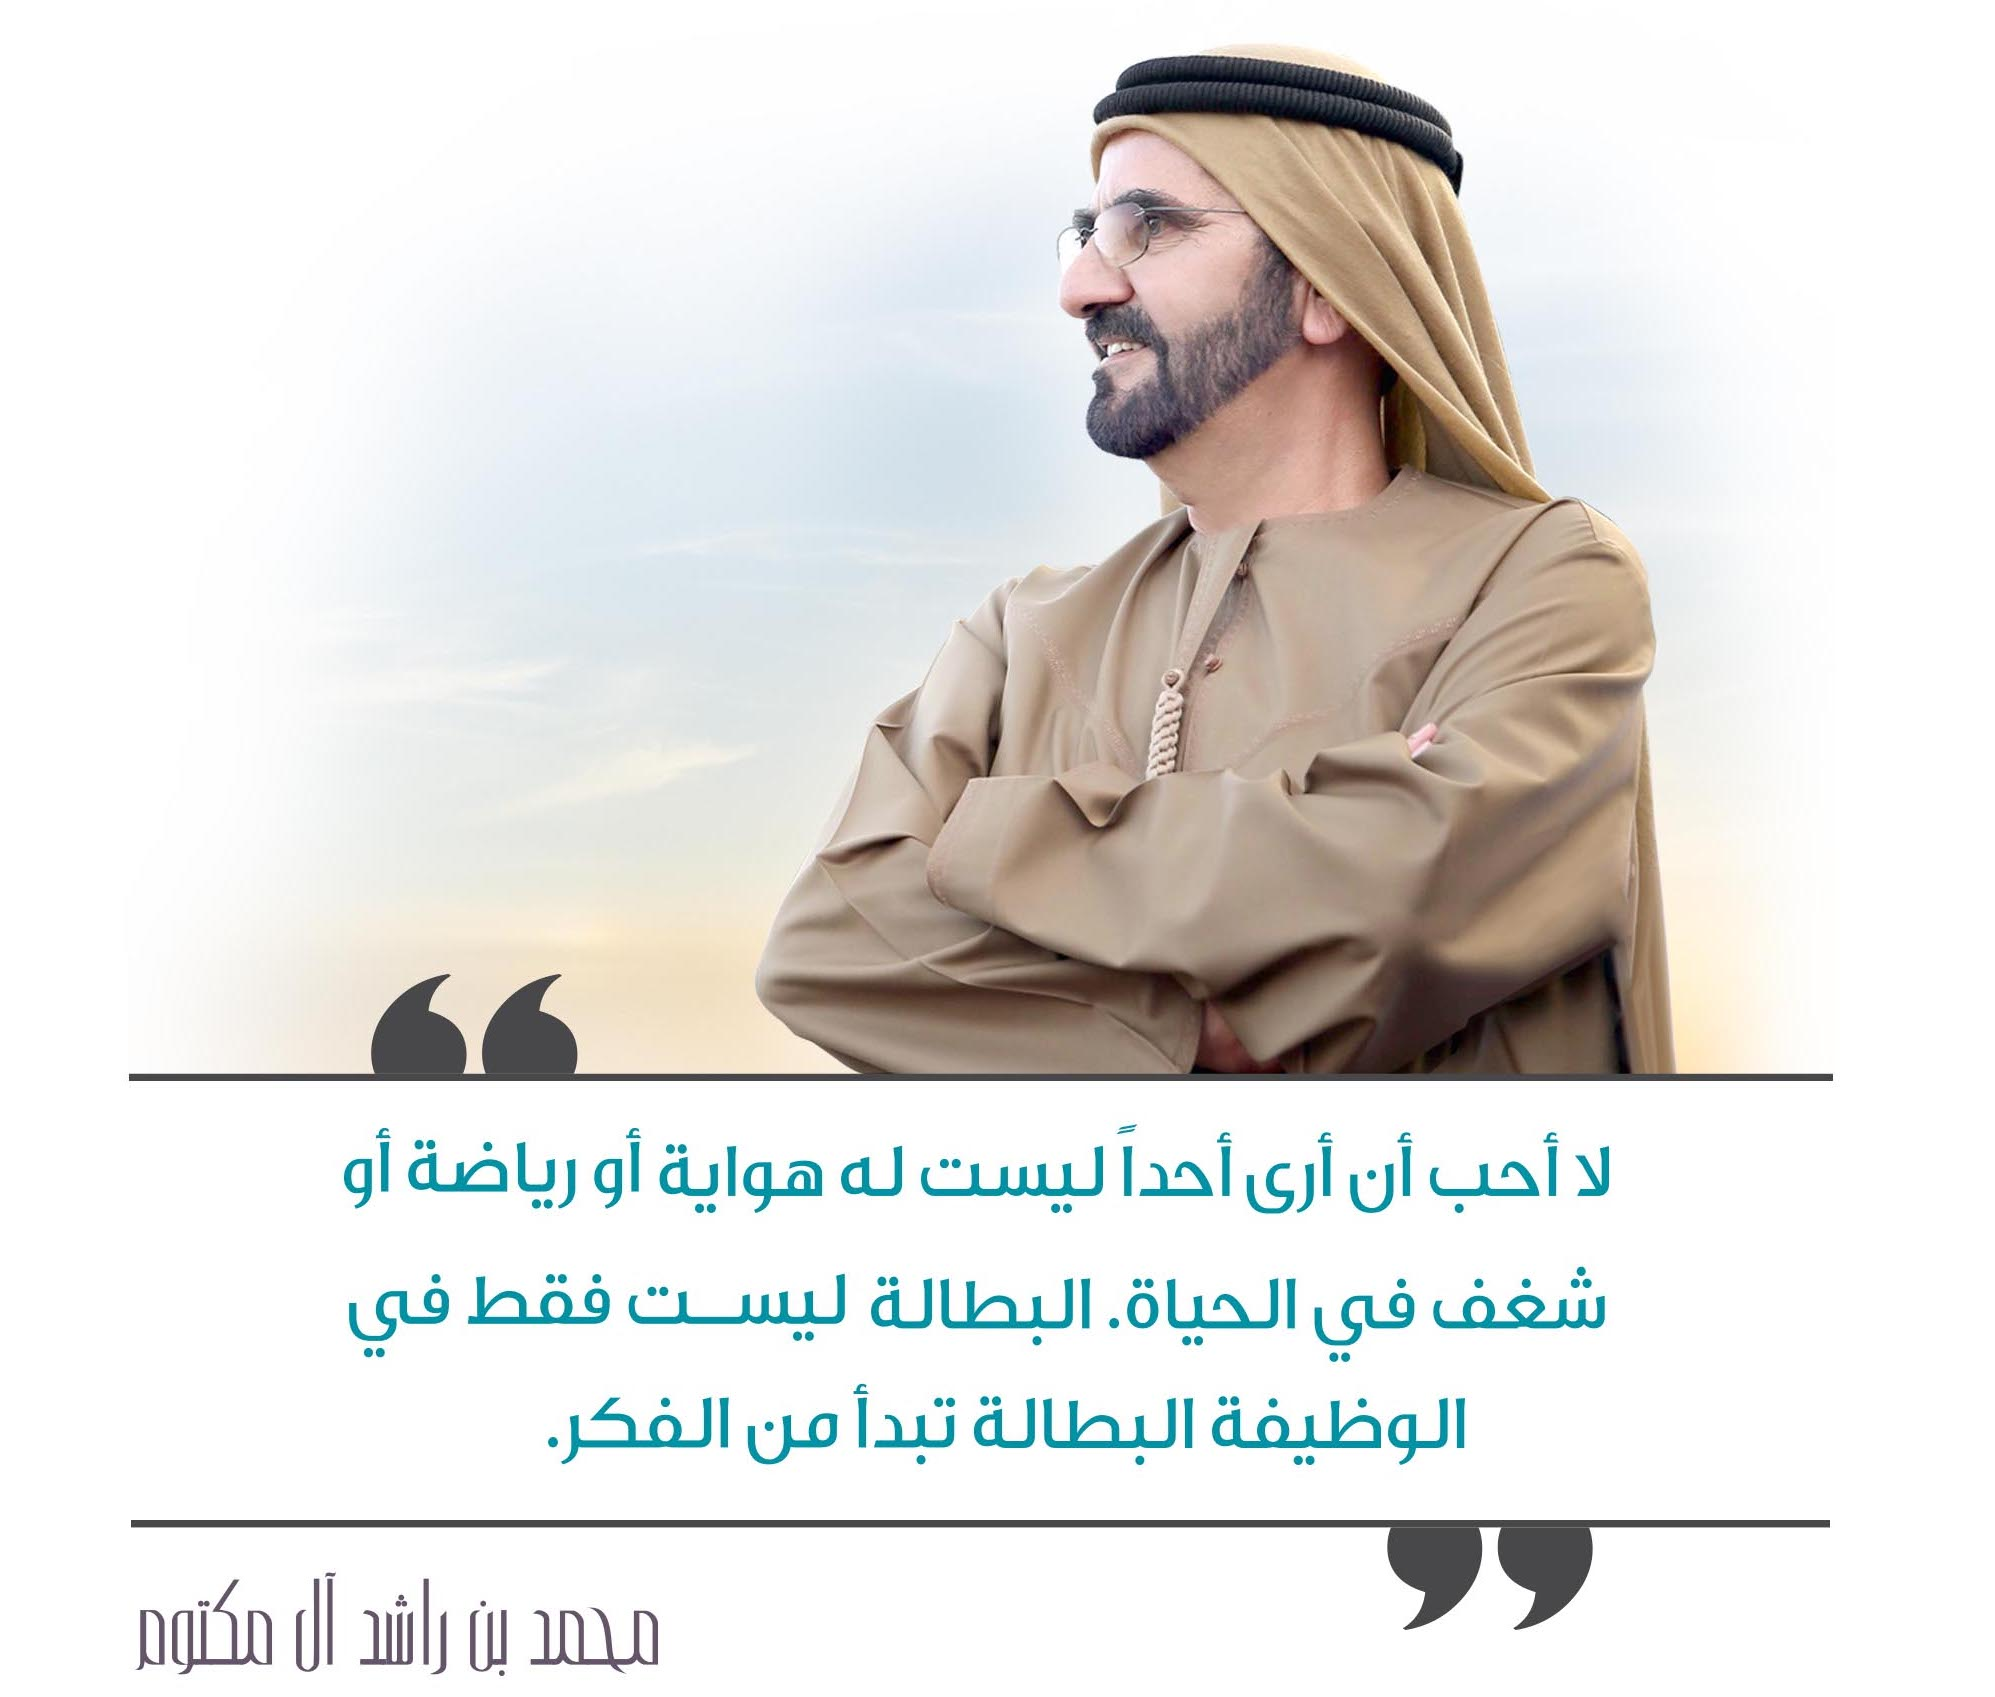 mohammed bin rashid releases new book reflections on happiness